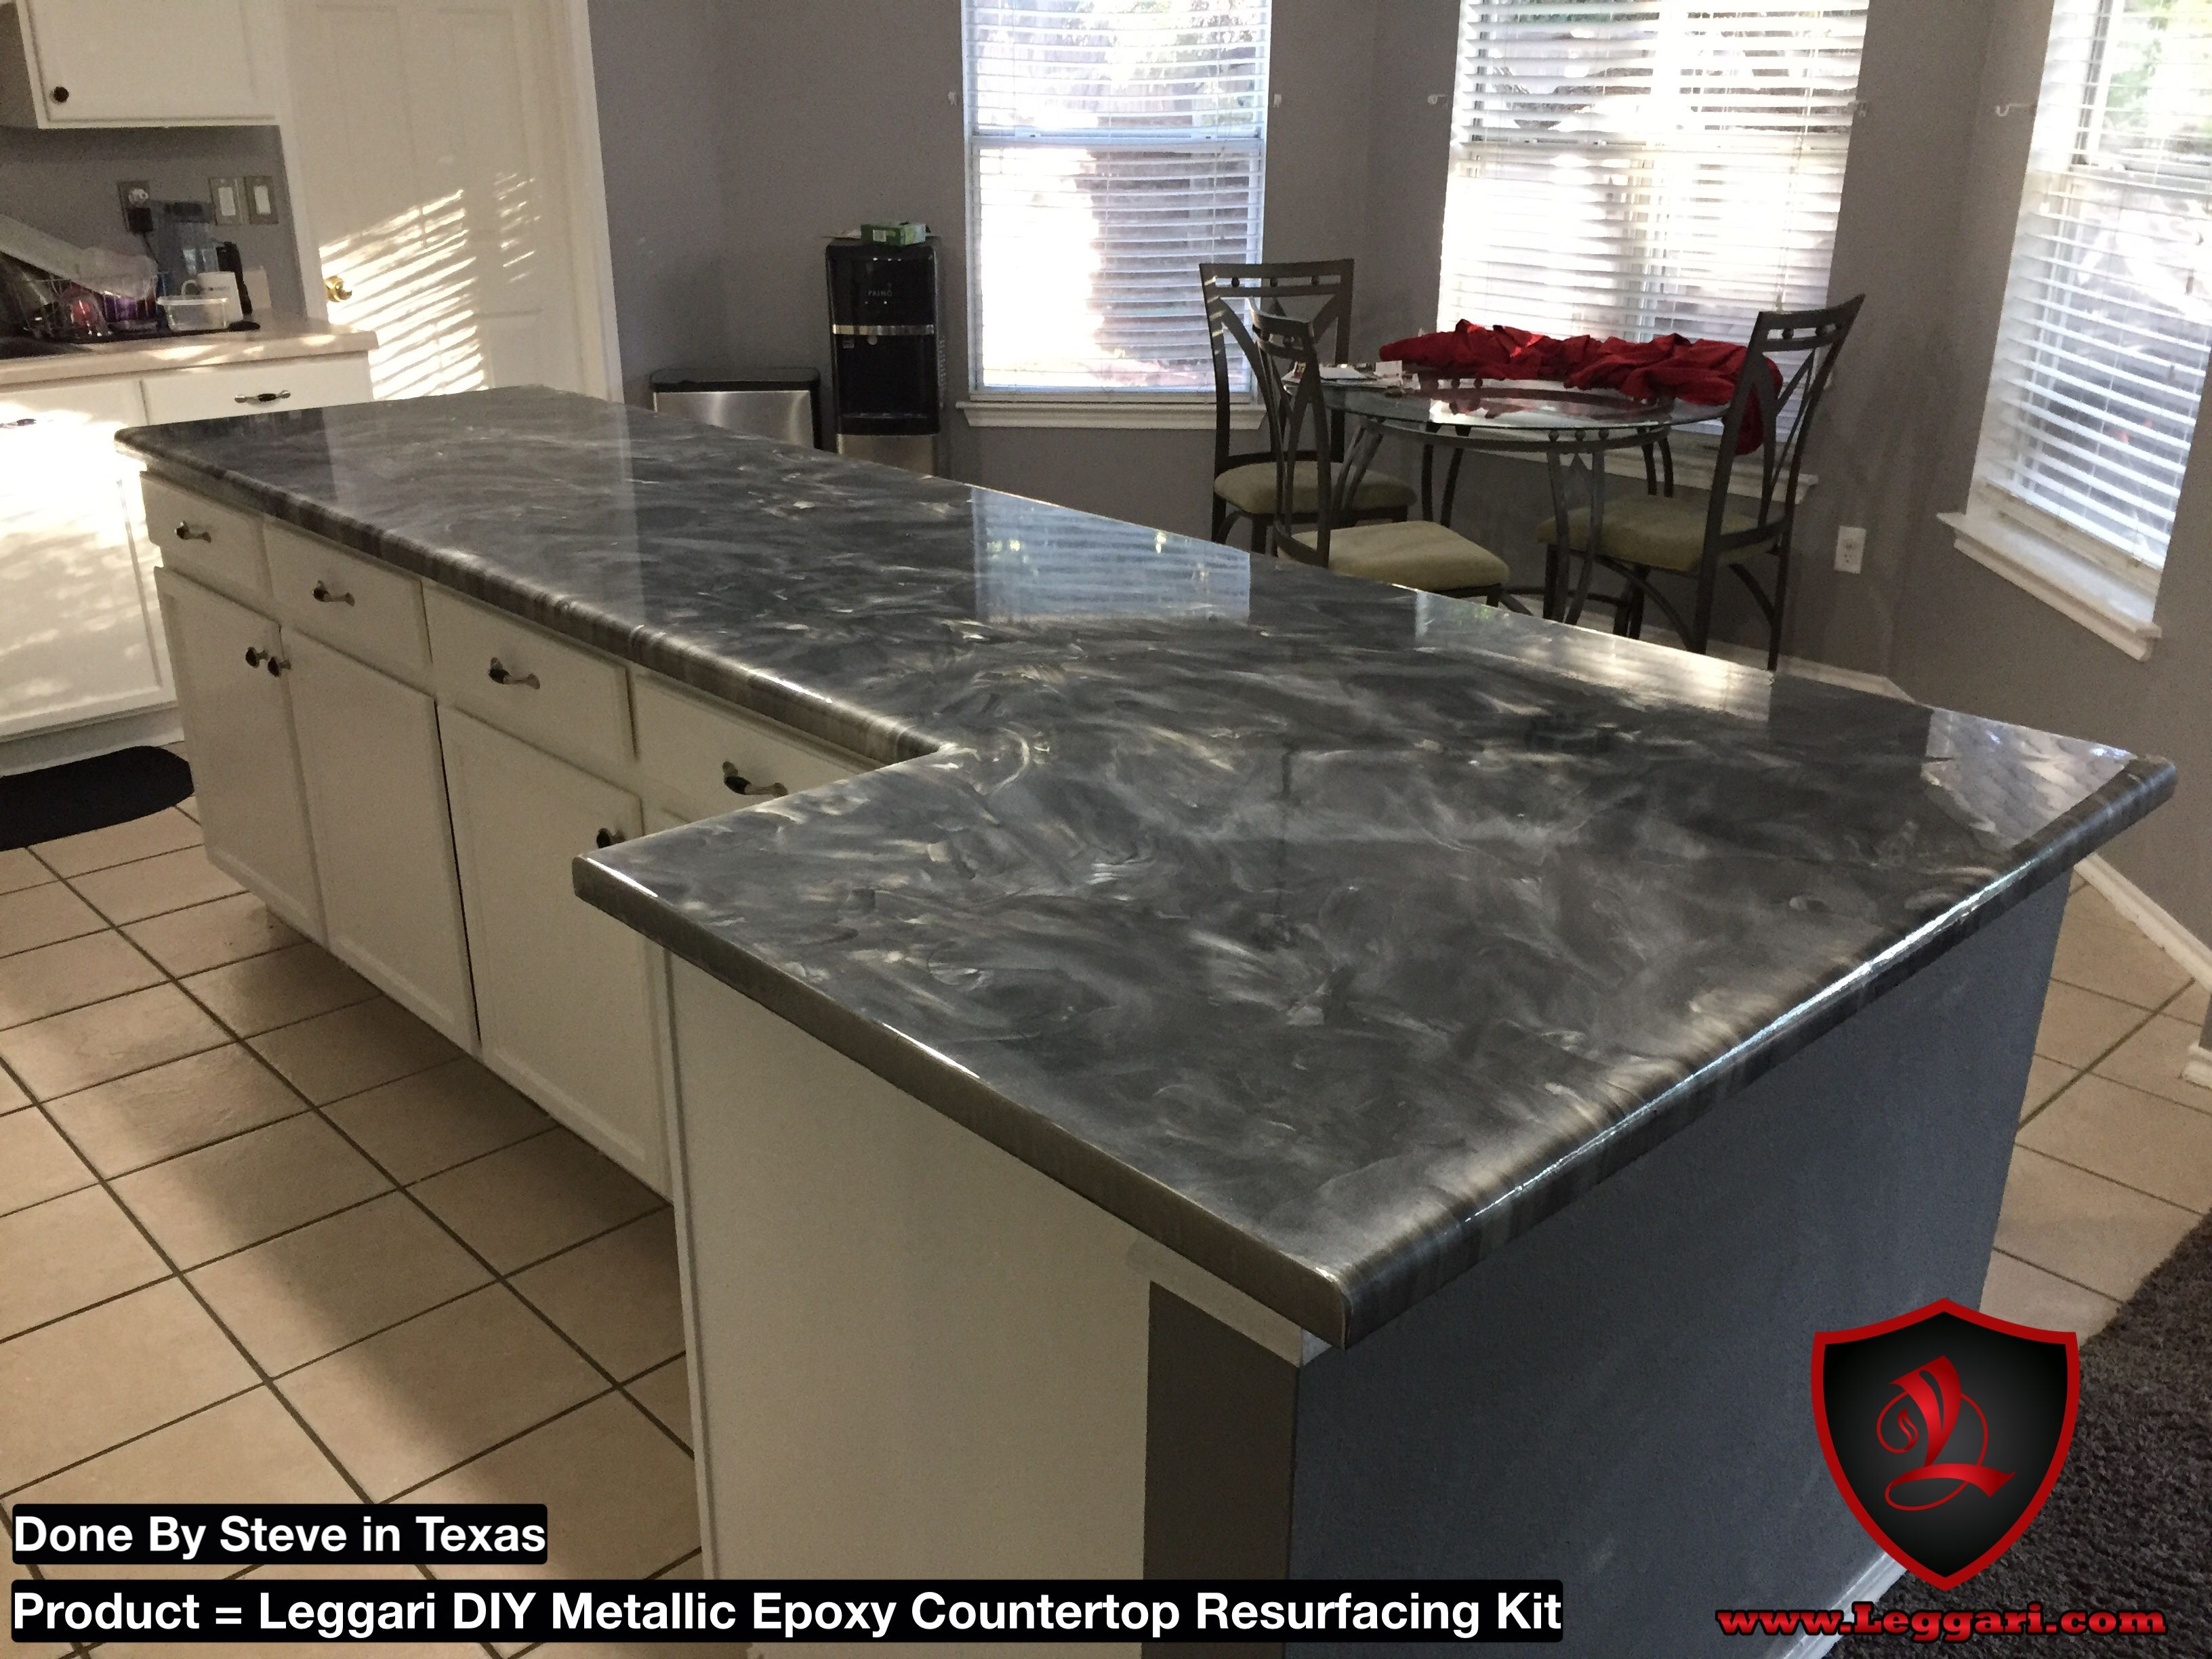 Get Your Kit Today And Coat Something Countertops Diy Metallic Epoxy Countertop